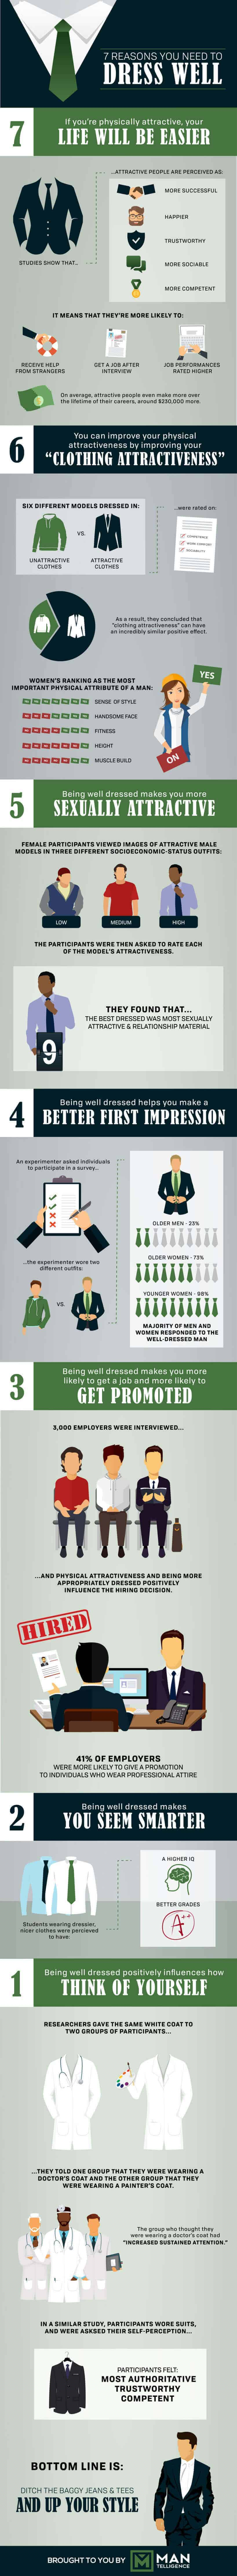 reasons to dress well infographic